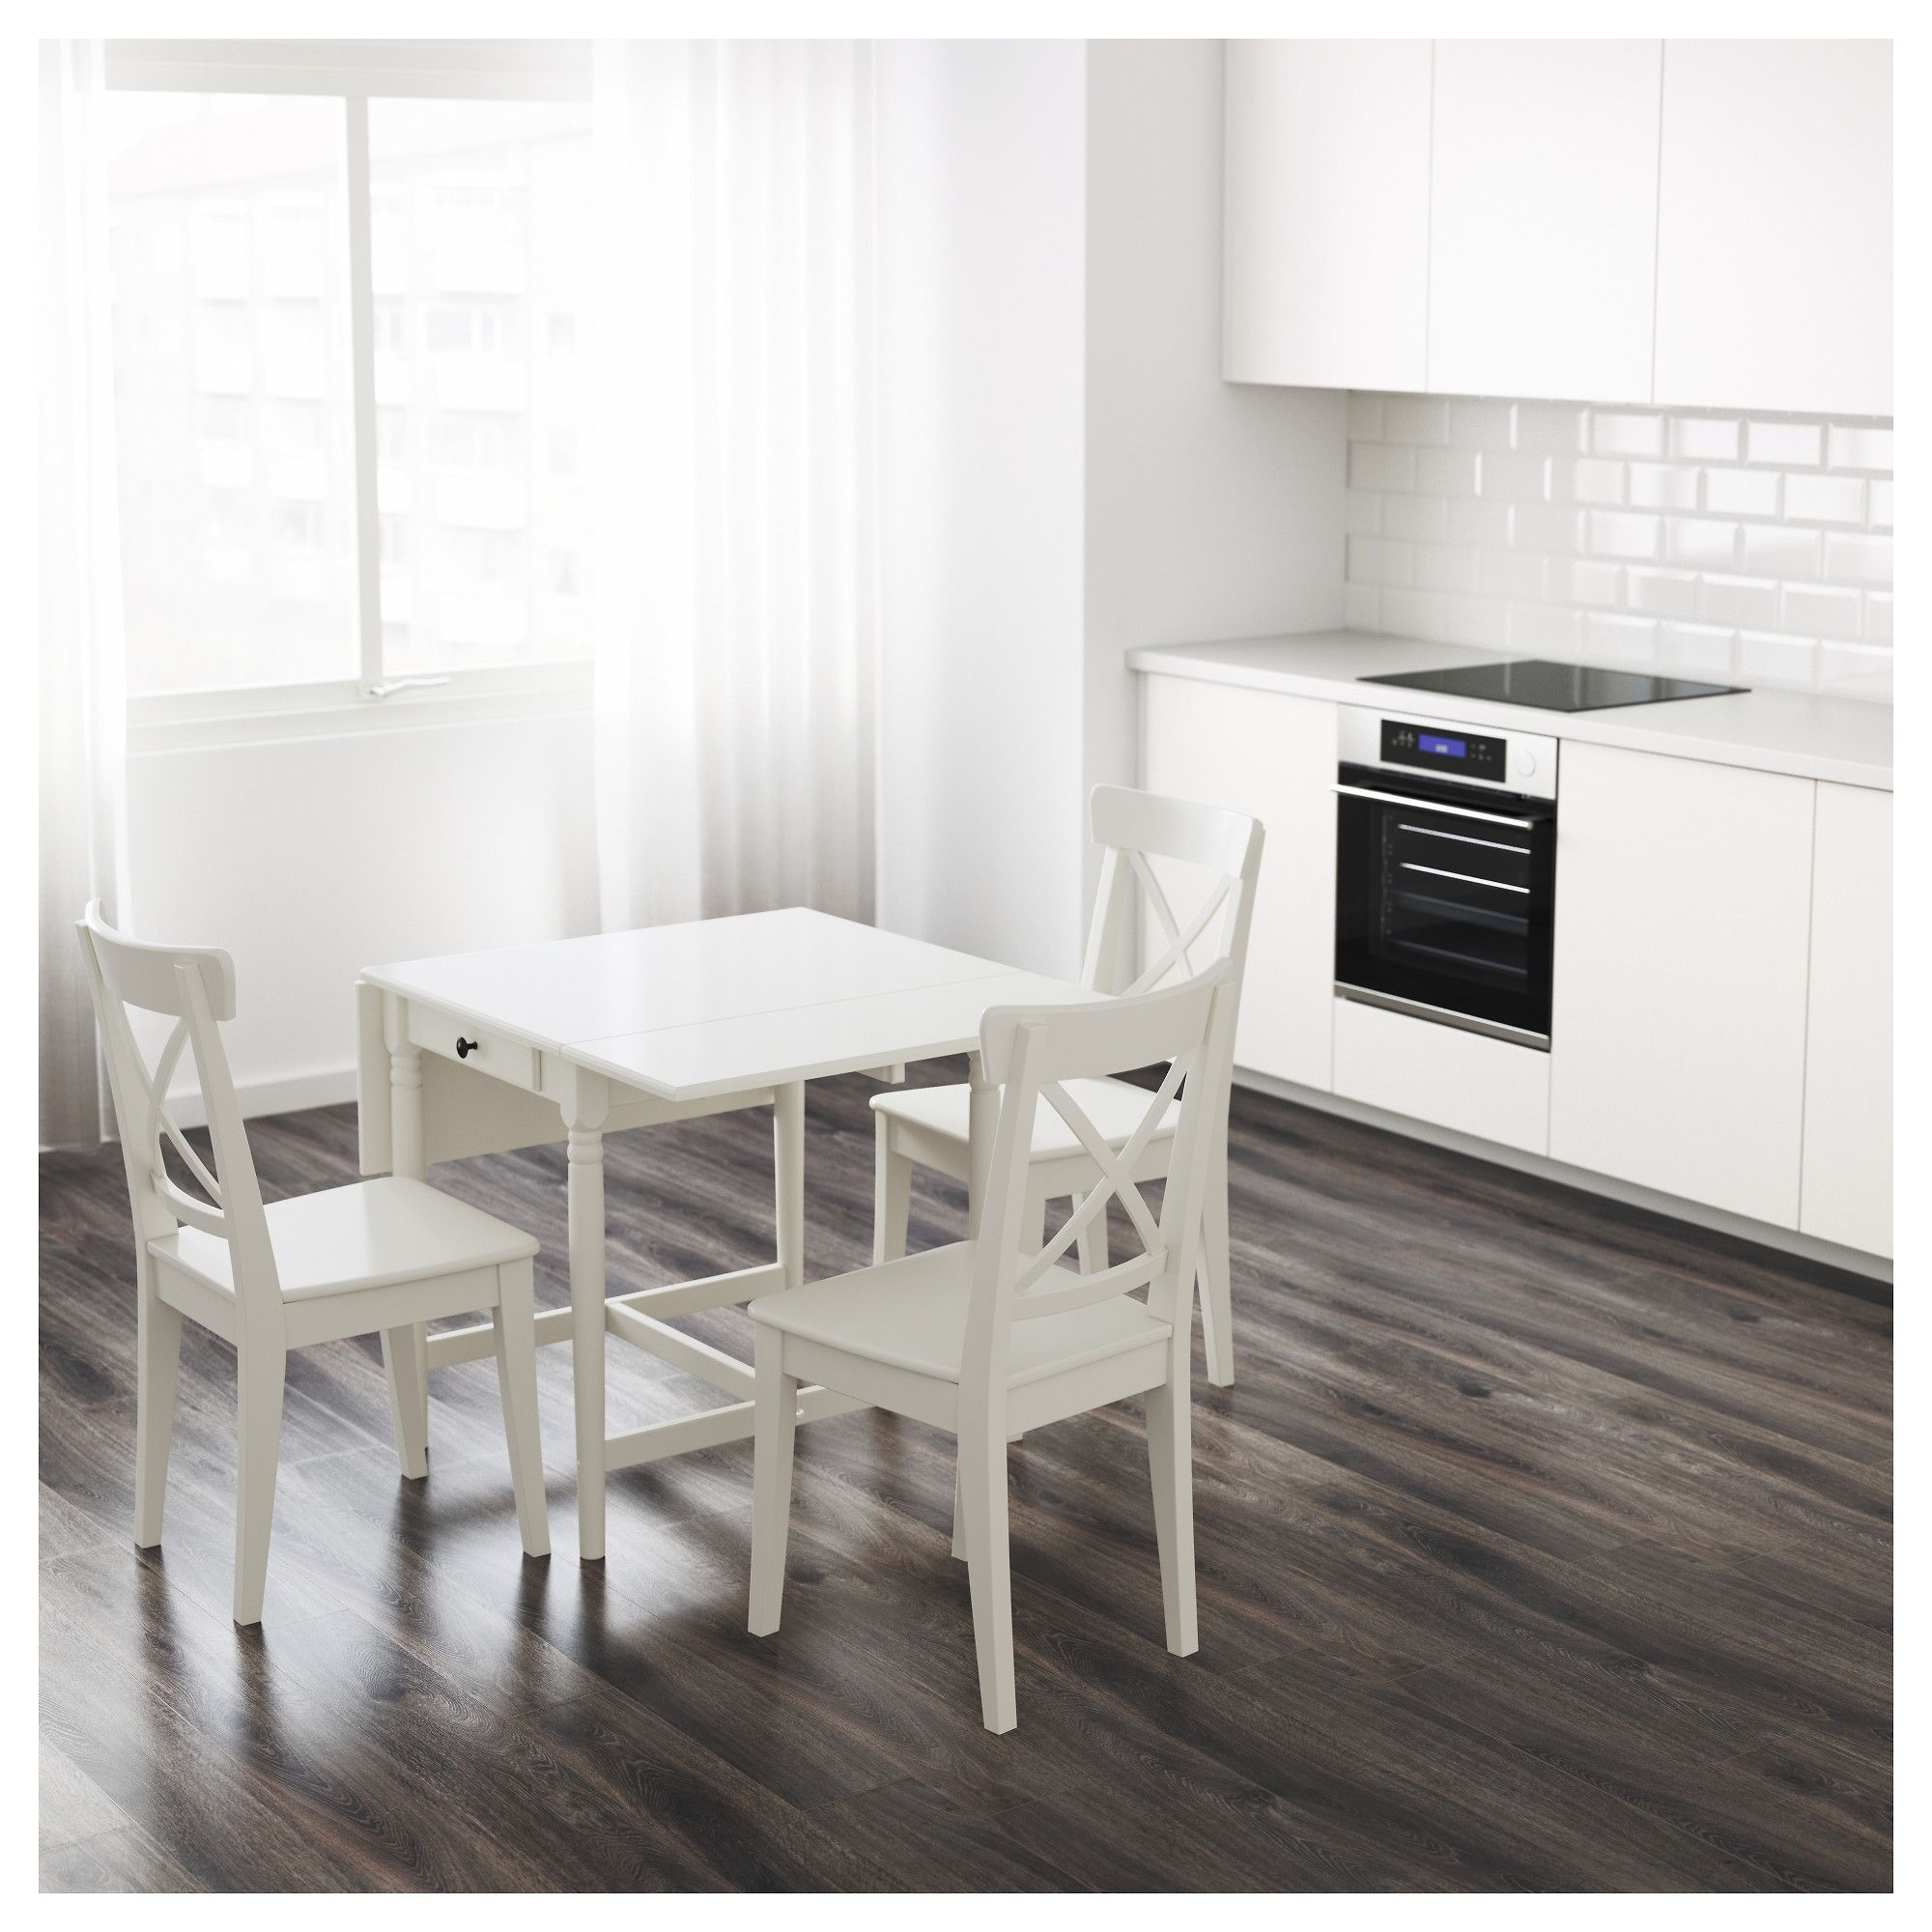 Table Ingatorp Ikea Ikea Ingatorp Drop Leaf Table White Country Club